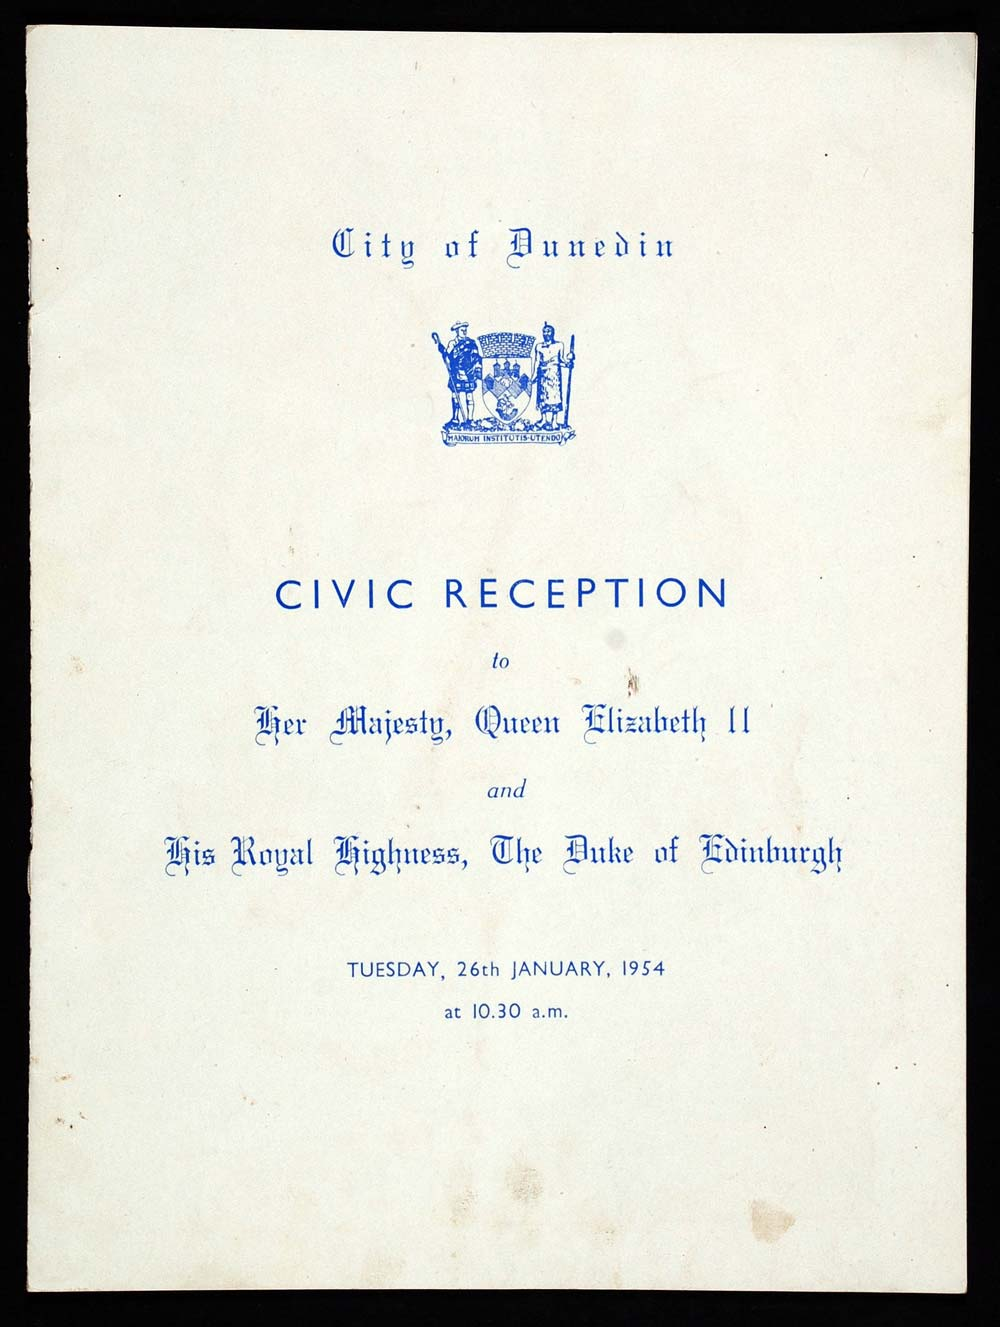 Programme. Civic reception to Her Majesty, Queen Elizabeth II and His Royal Highness, the Duke of Edinburgh … 26th January 1954. Dunedin: Dunedin City Council, [1954].